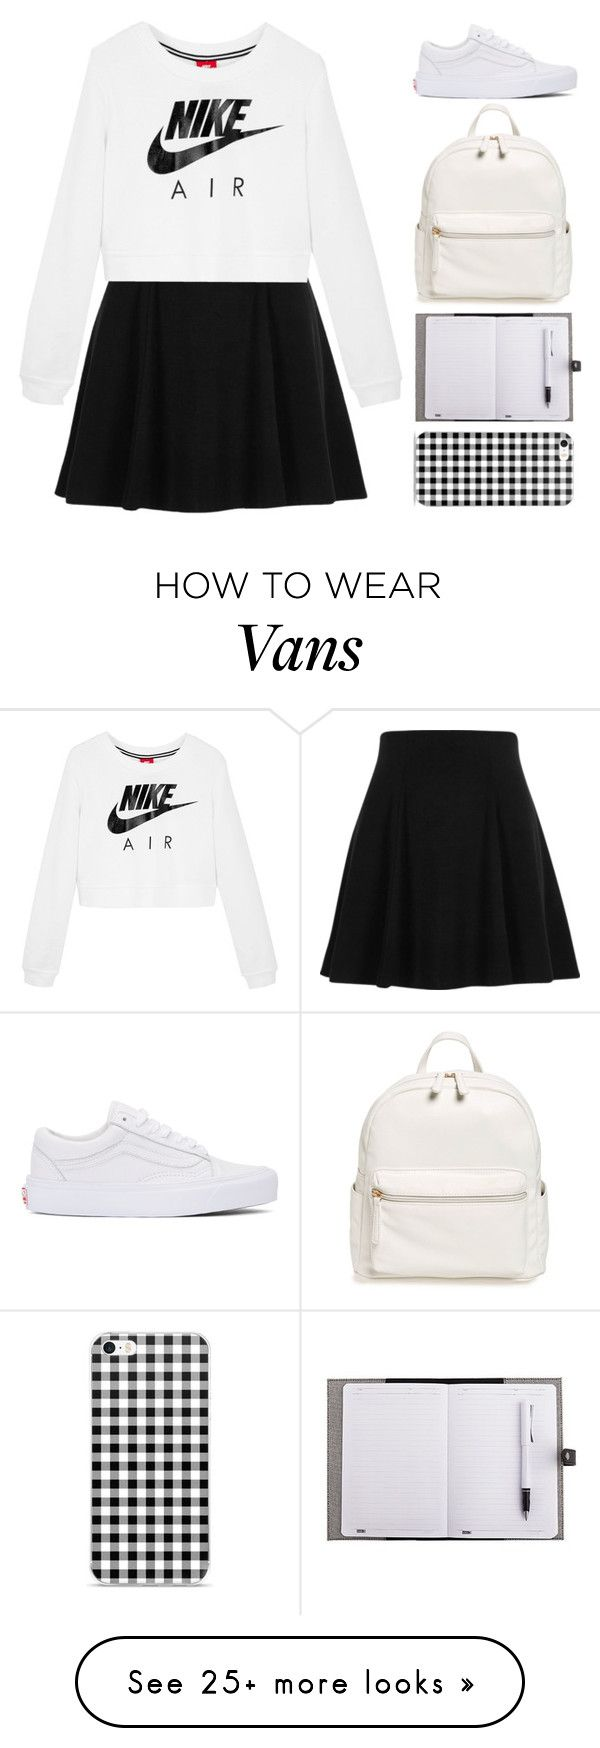 """Skippin' Class"" by zhafirahratu on Polyvore featuring River Island, NIKE, Vans and BP."